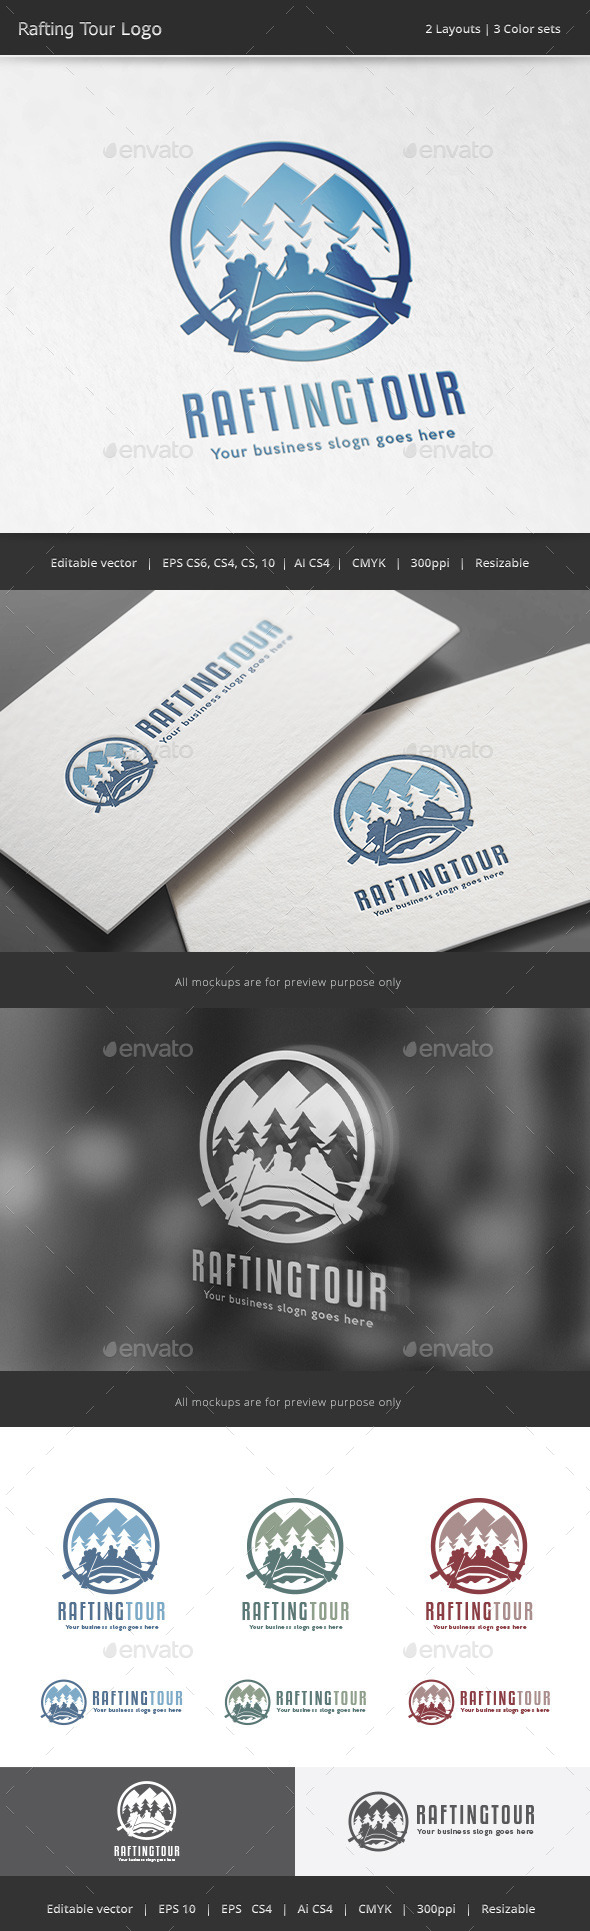 Rafting Tour Adventure Logo - Vector Abstract